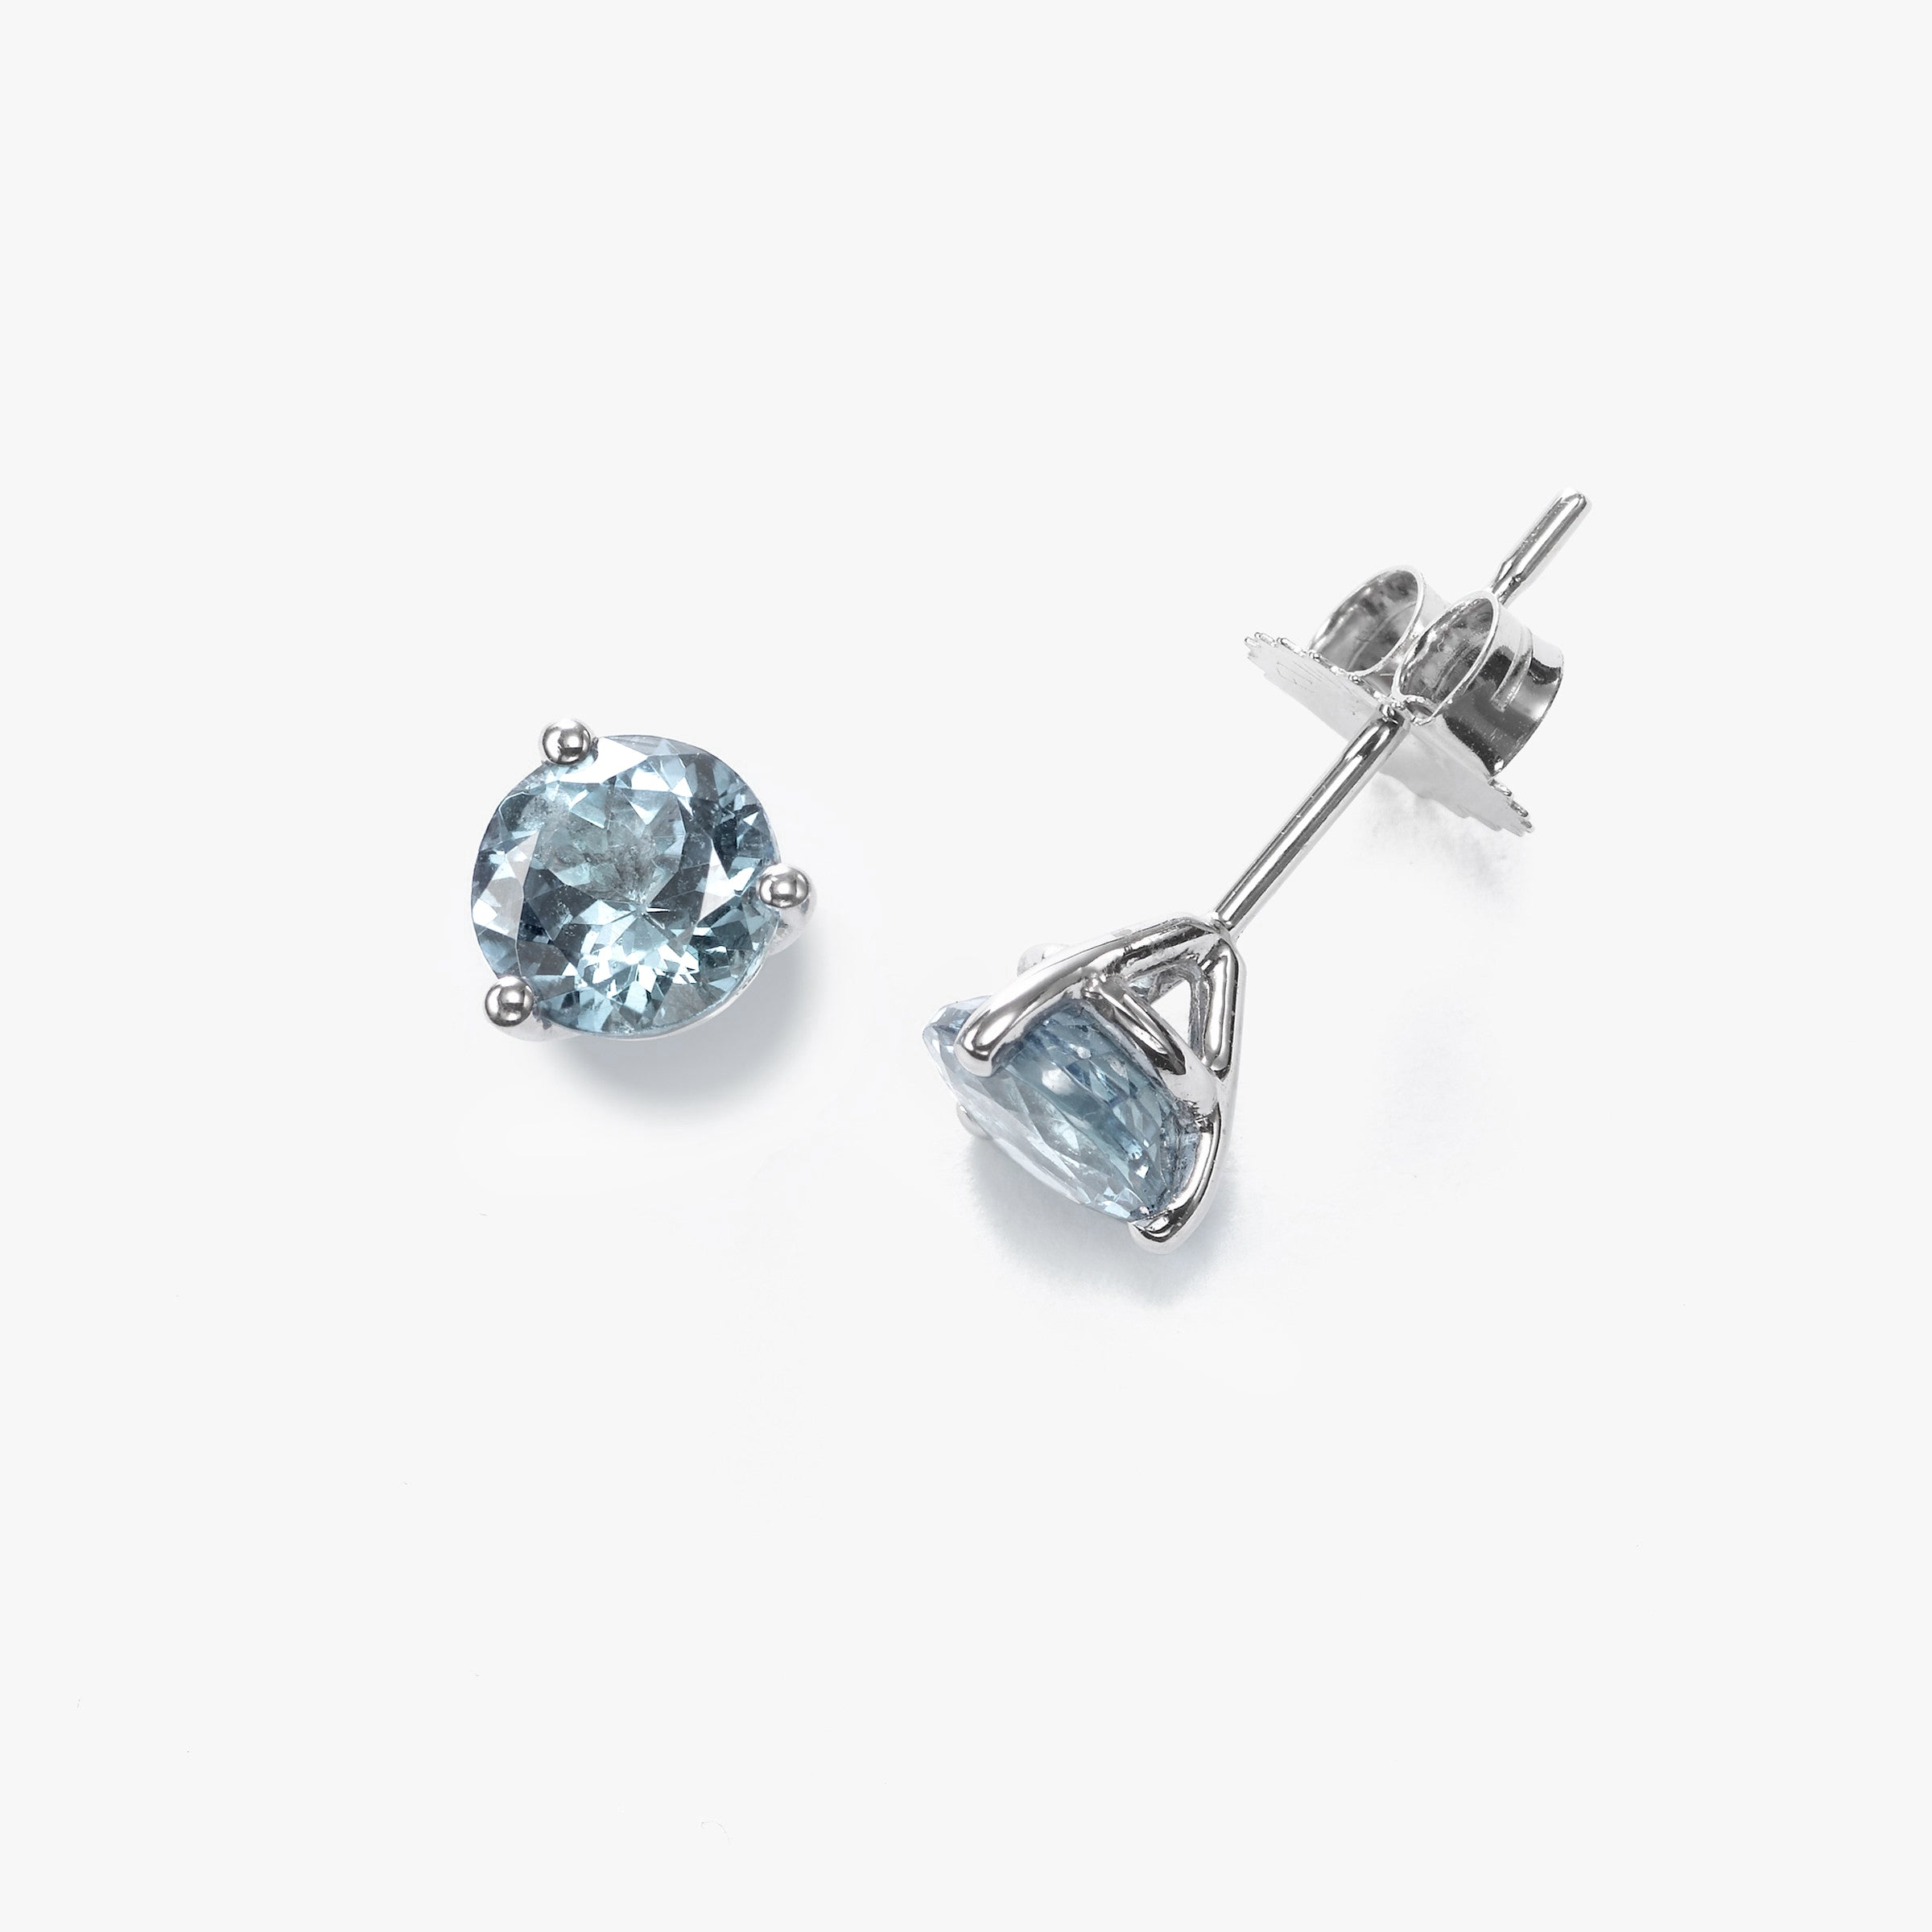 Three Prong Aquamarine Martini Stud Earrings, 14K White Gold